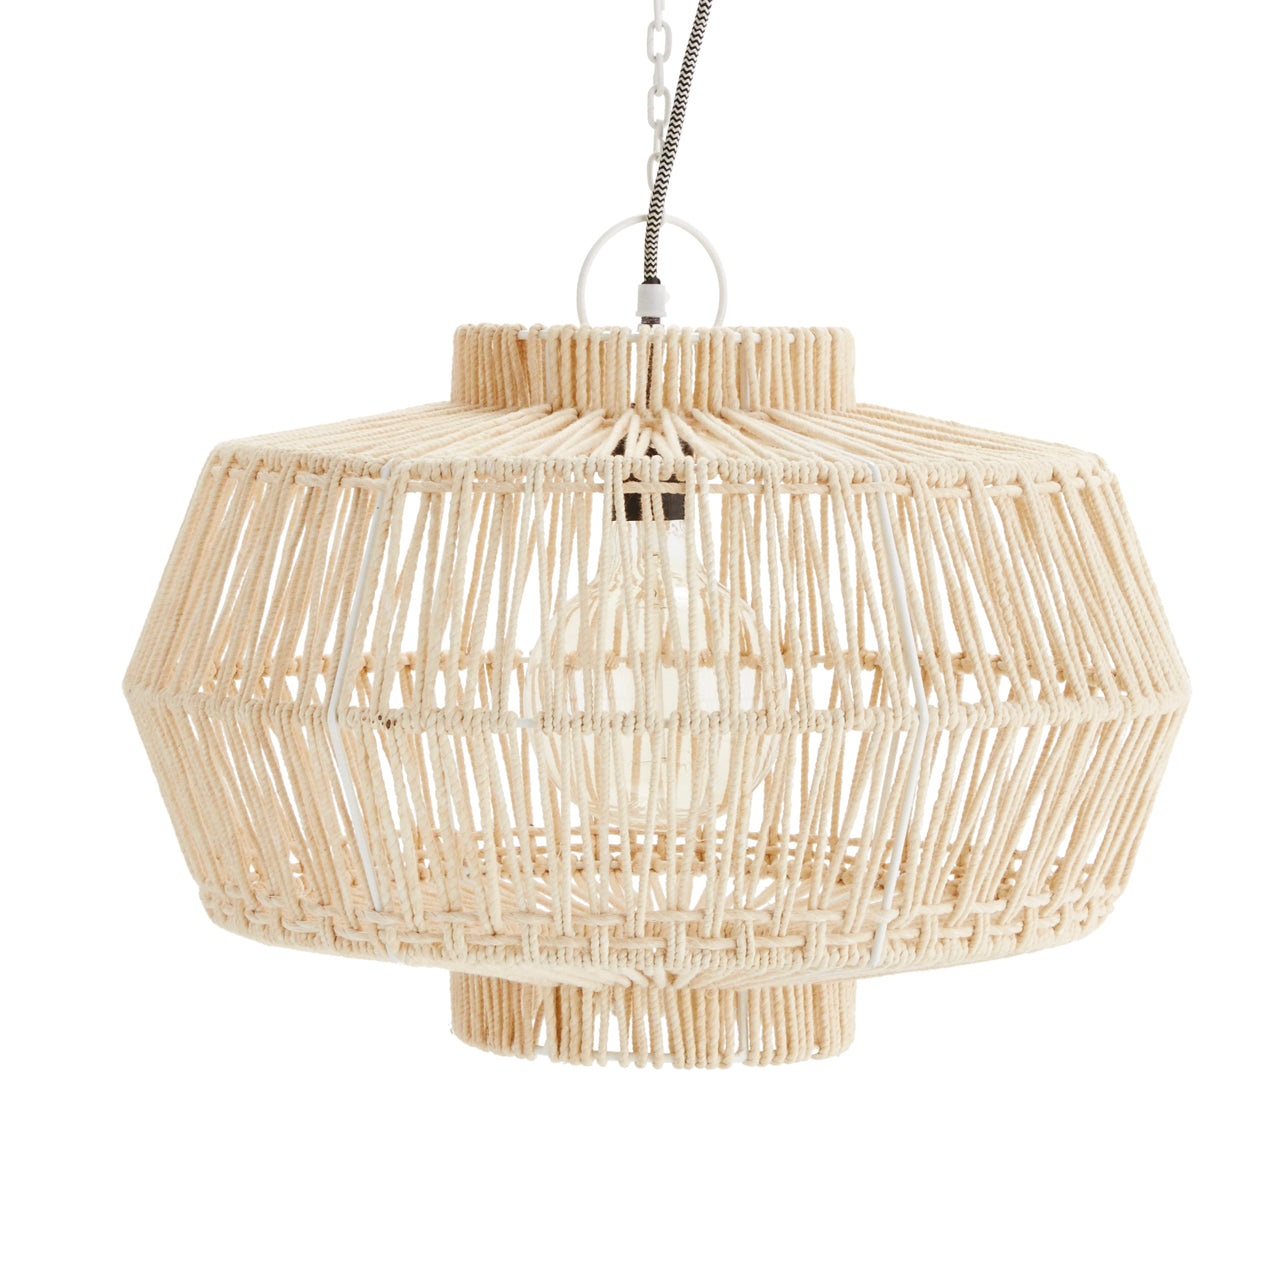 Beige Macrame Ceiling Light